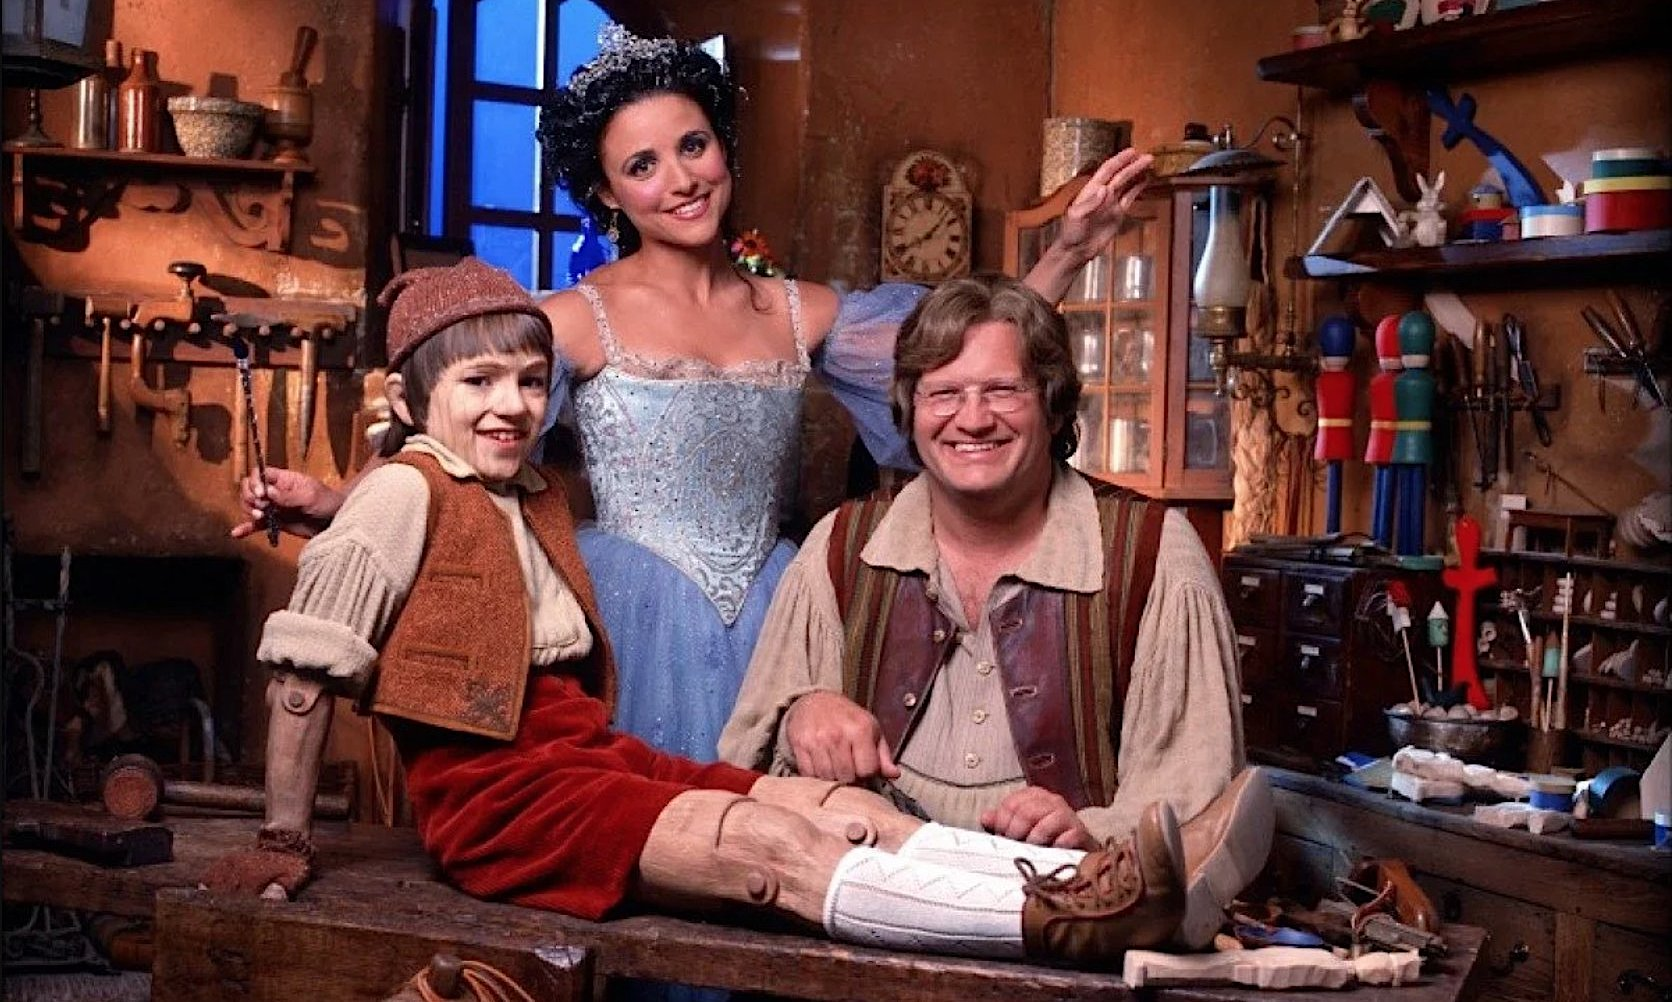 Drew Carey and Julia Louis-Dreyfus beam over the wooden boy Pinocchio in a promo still for 2000's Geppetto